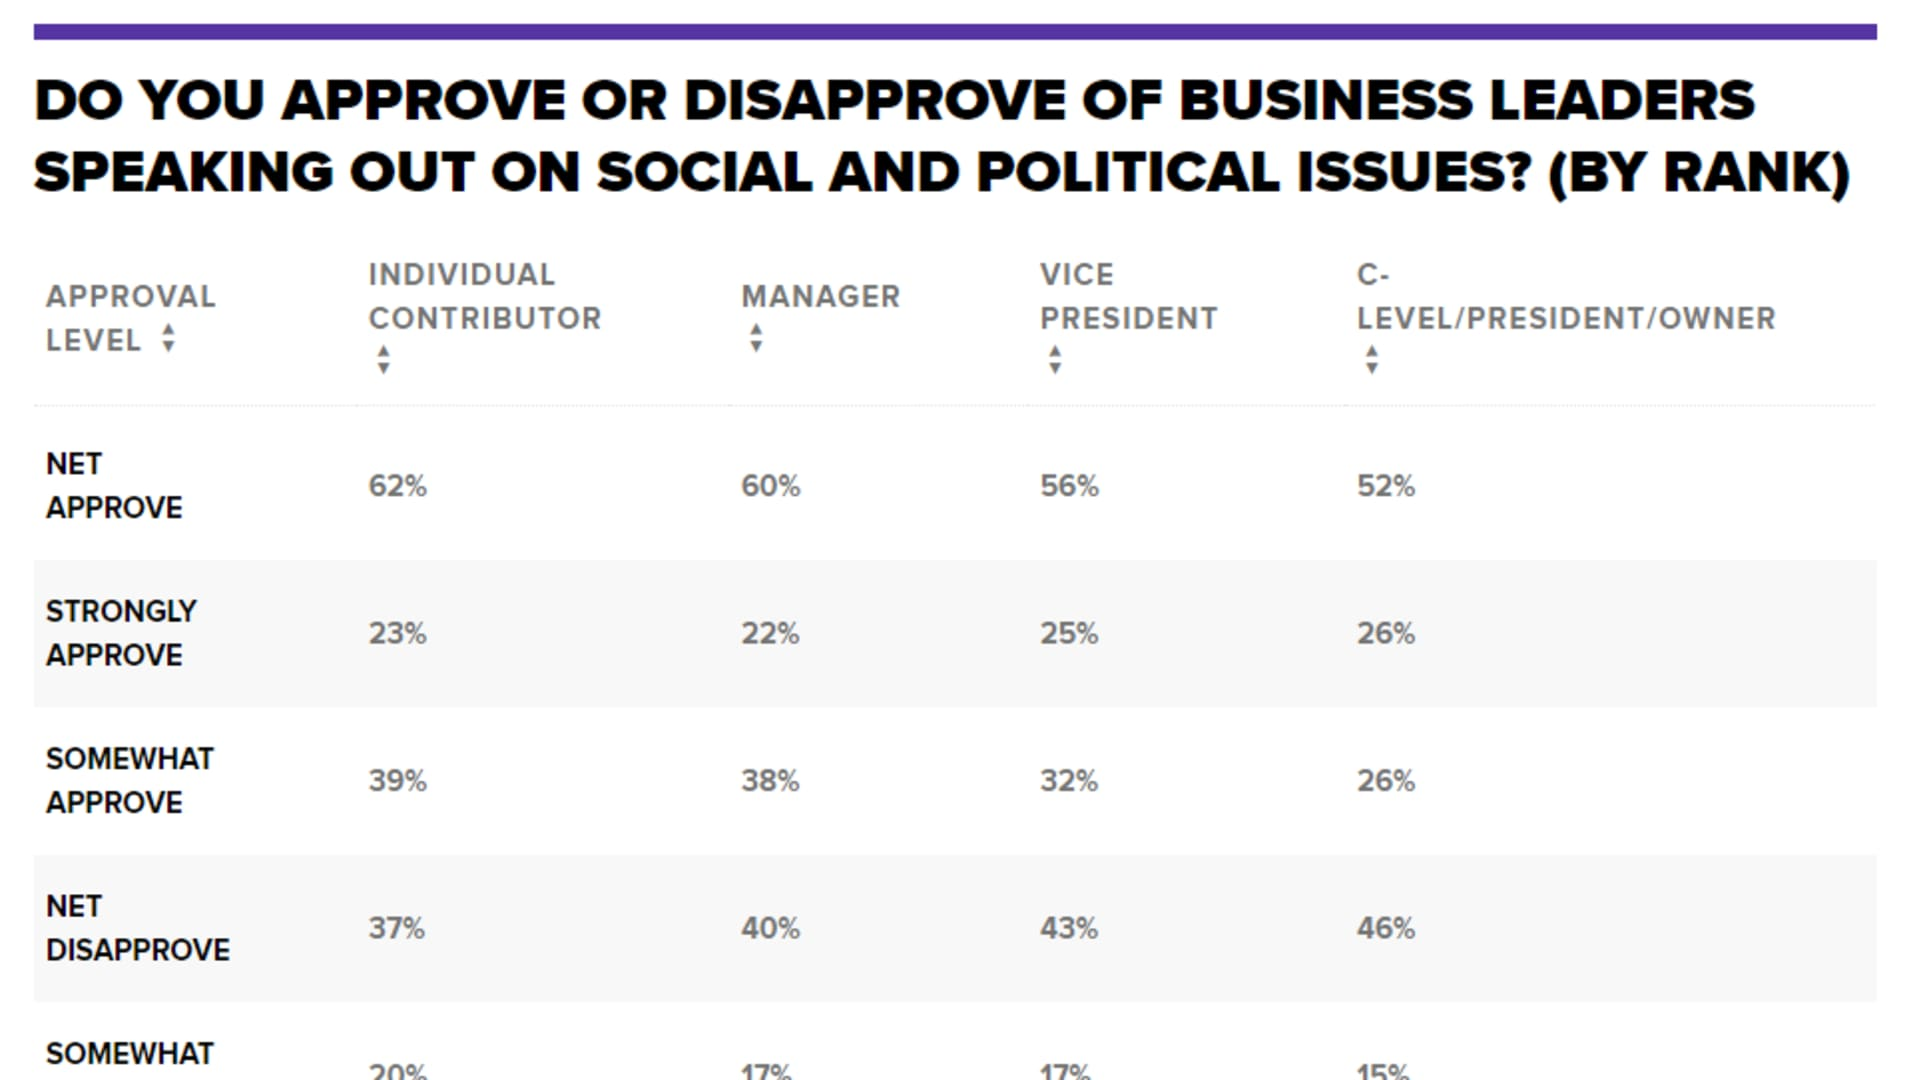 Workers want their leaders to speak up, but the leaders themselves are still often reluctant, according to the Q2 2021 CNBC SurveyMonkey Workforce Survey.